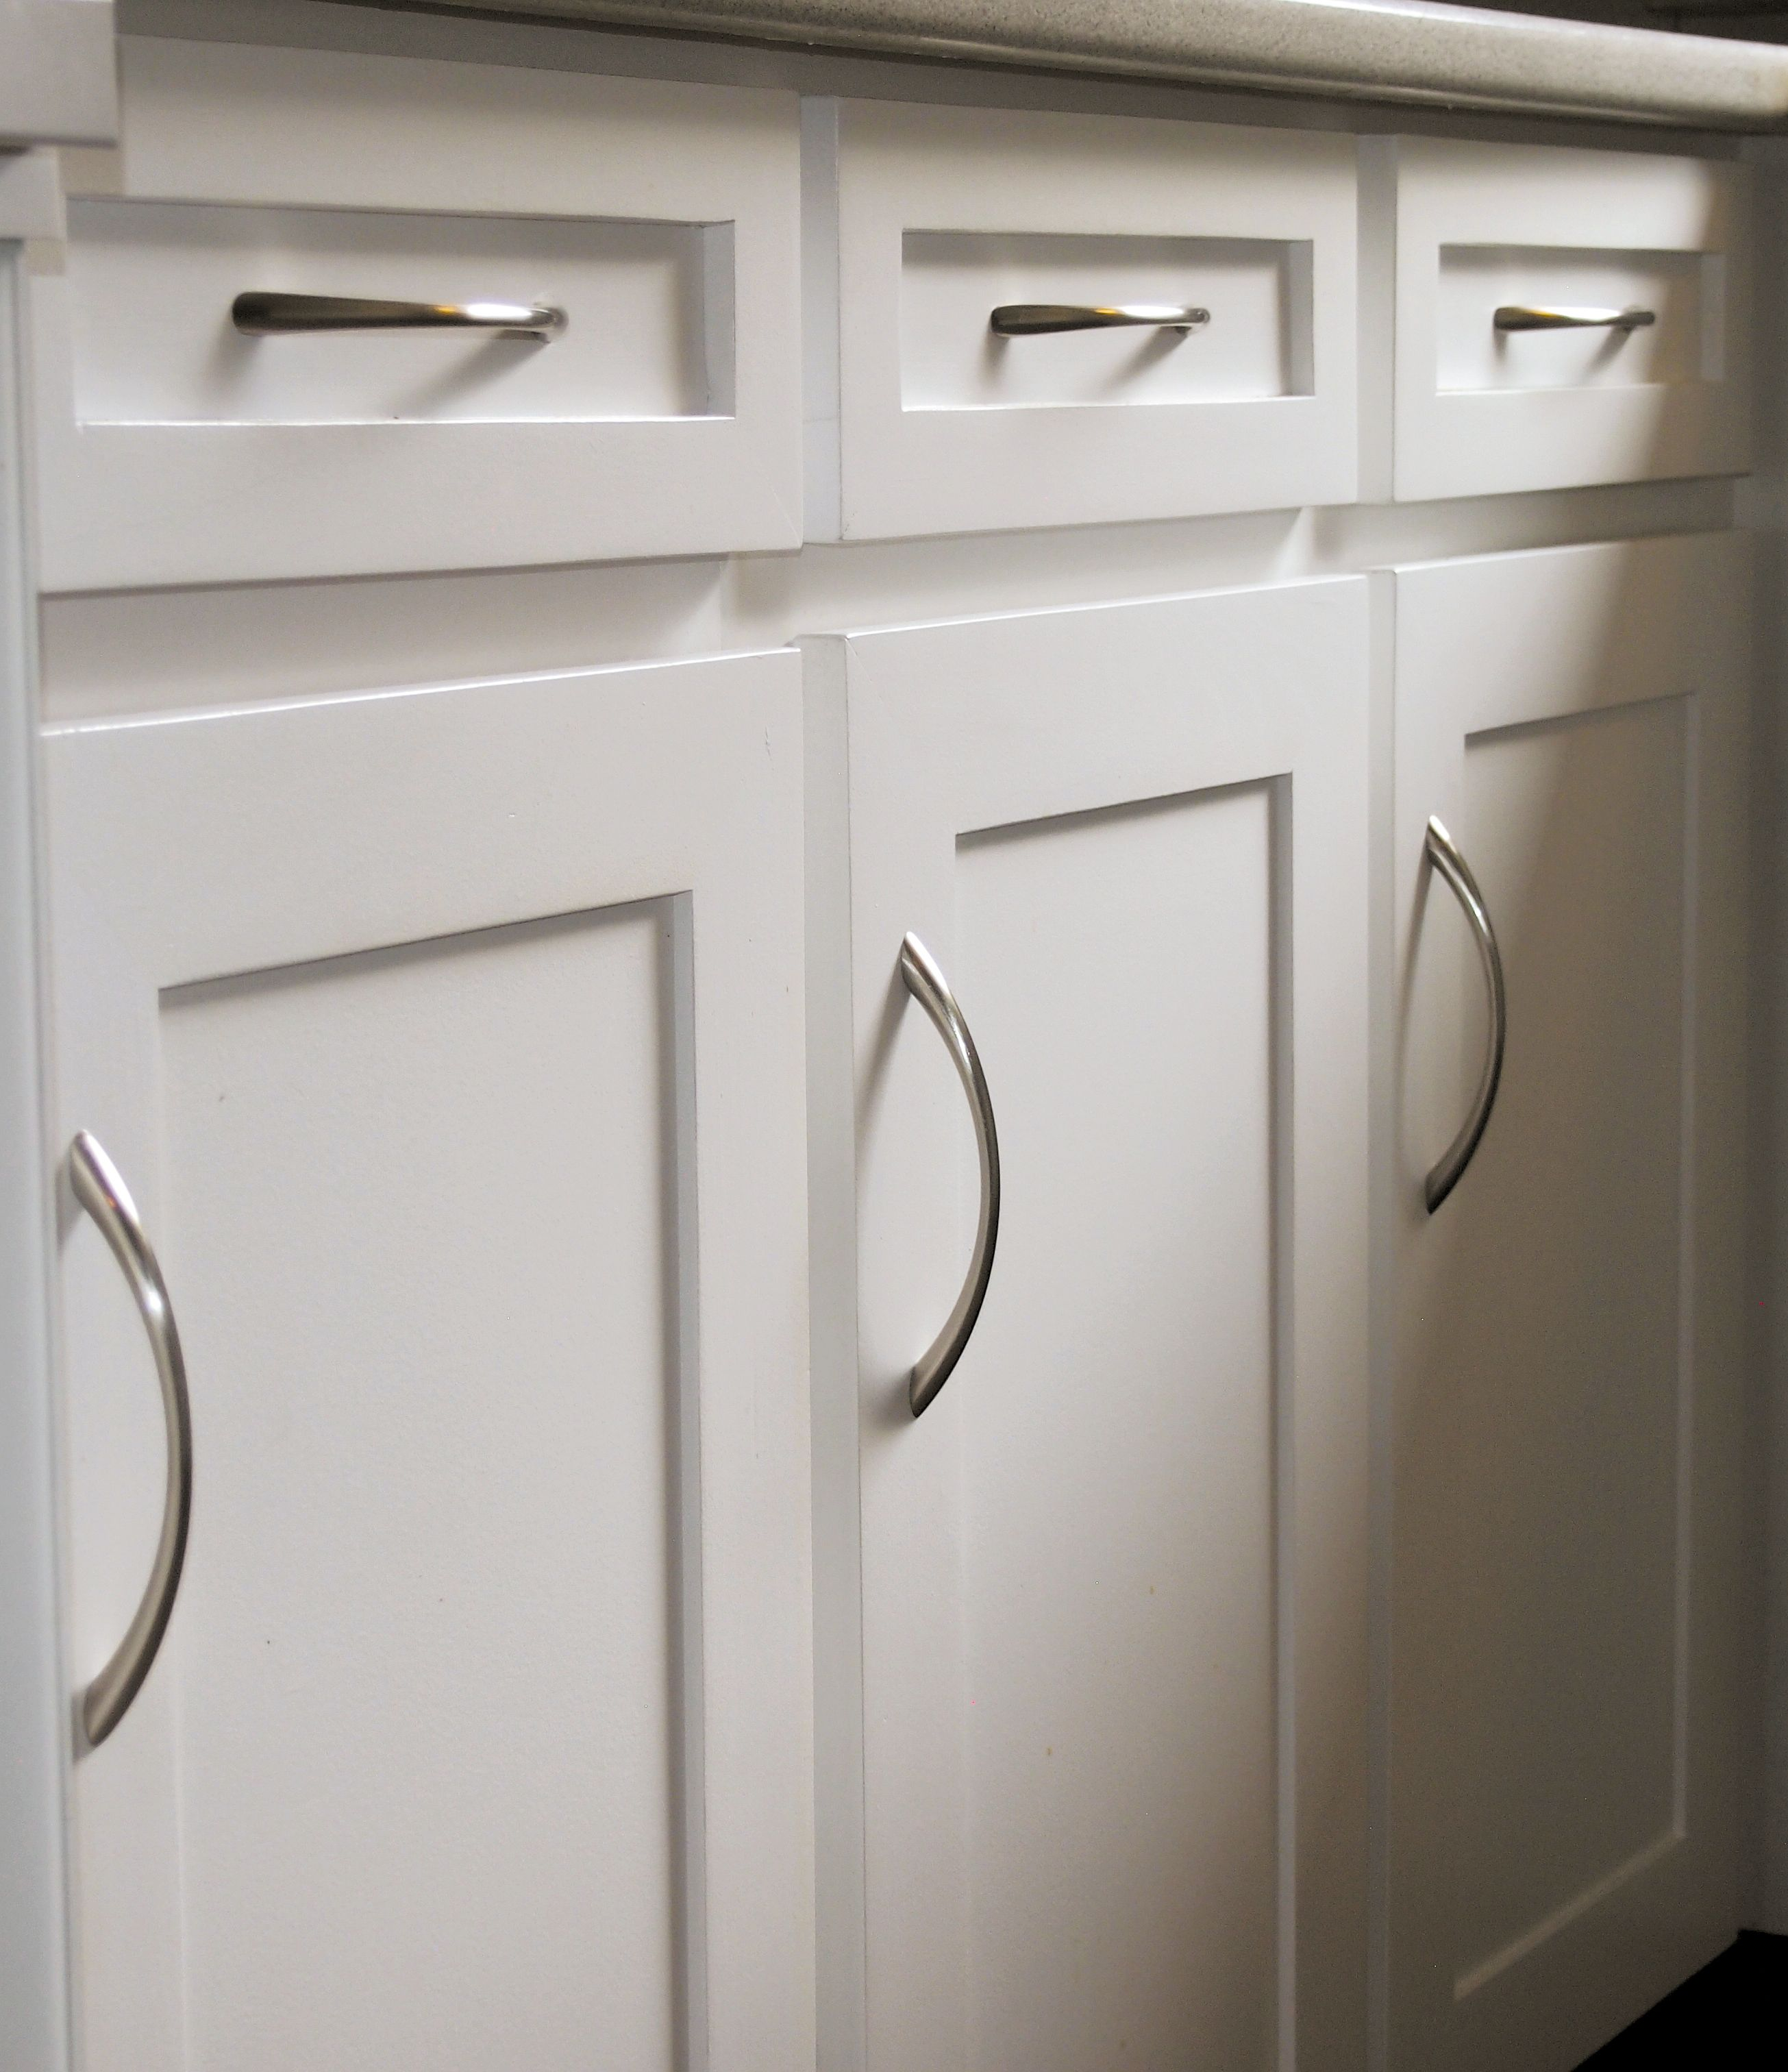 Simple Kitchen Cupboards clean, simple kitchen cabinet doors and drawer fronts with bow